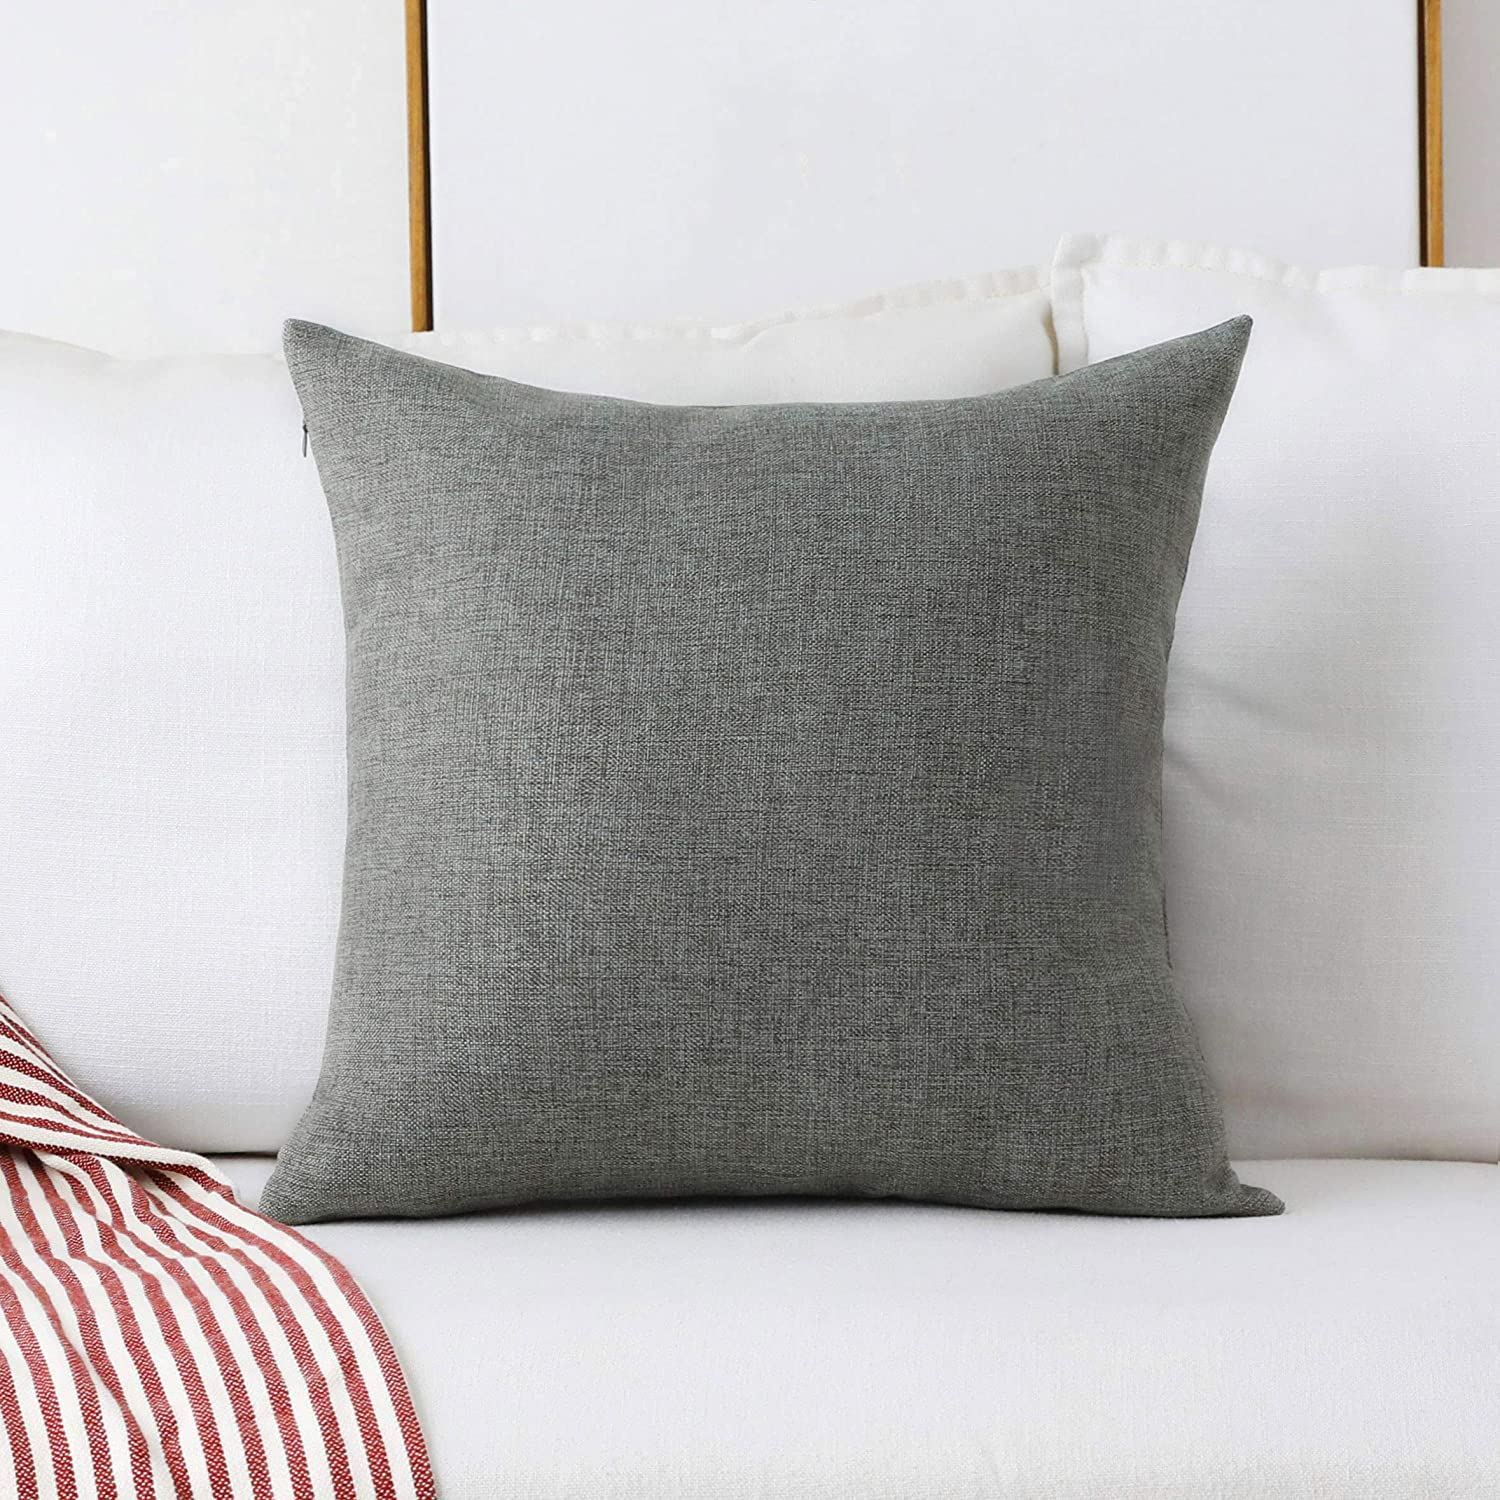 Home Brilliant Linen Large Fall Throw Pillow Cover Euro Sham Cushion Cover for Bench Bed Sofa, 26 x 26 inch(66cm), Dark Grey